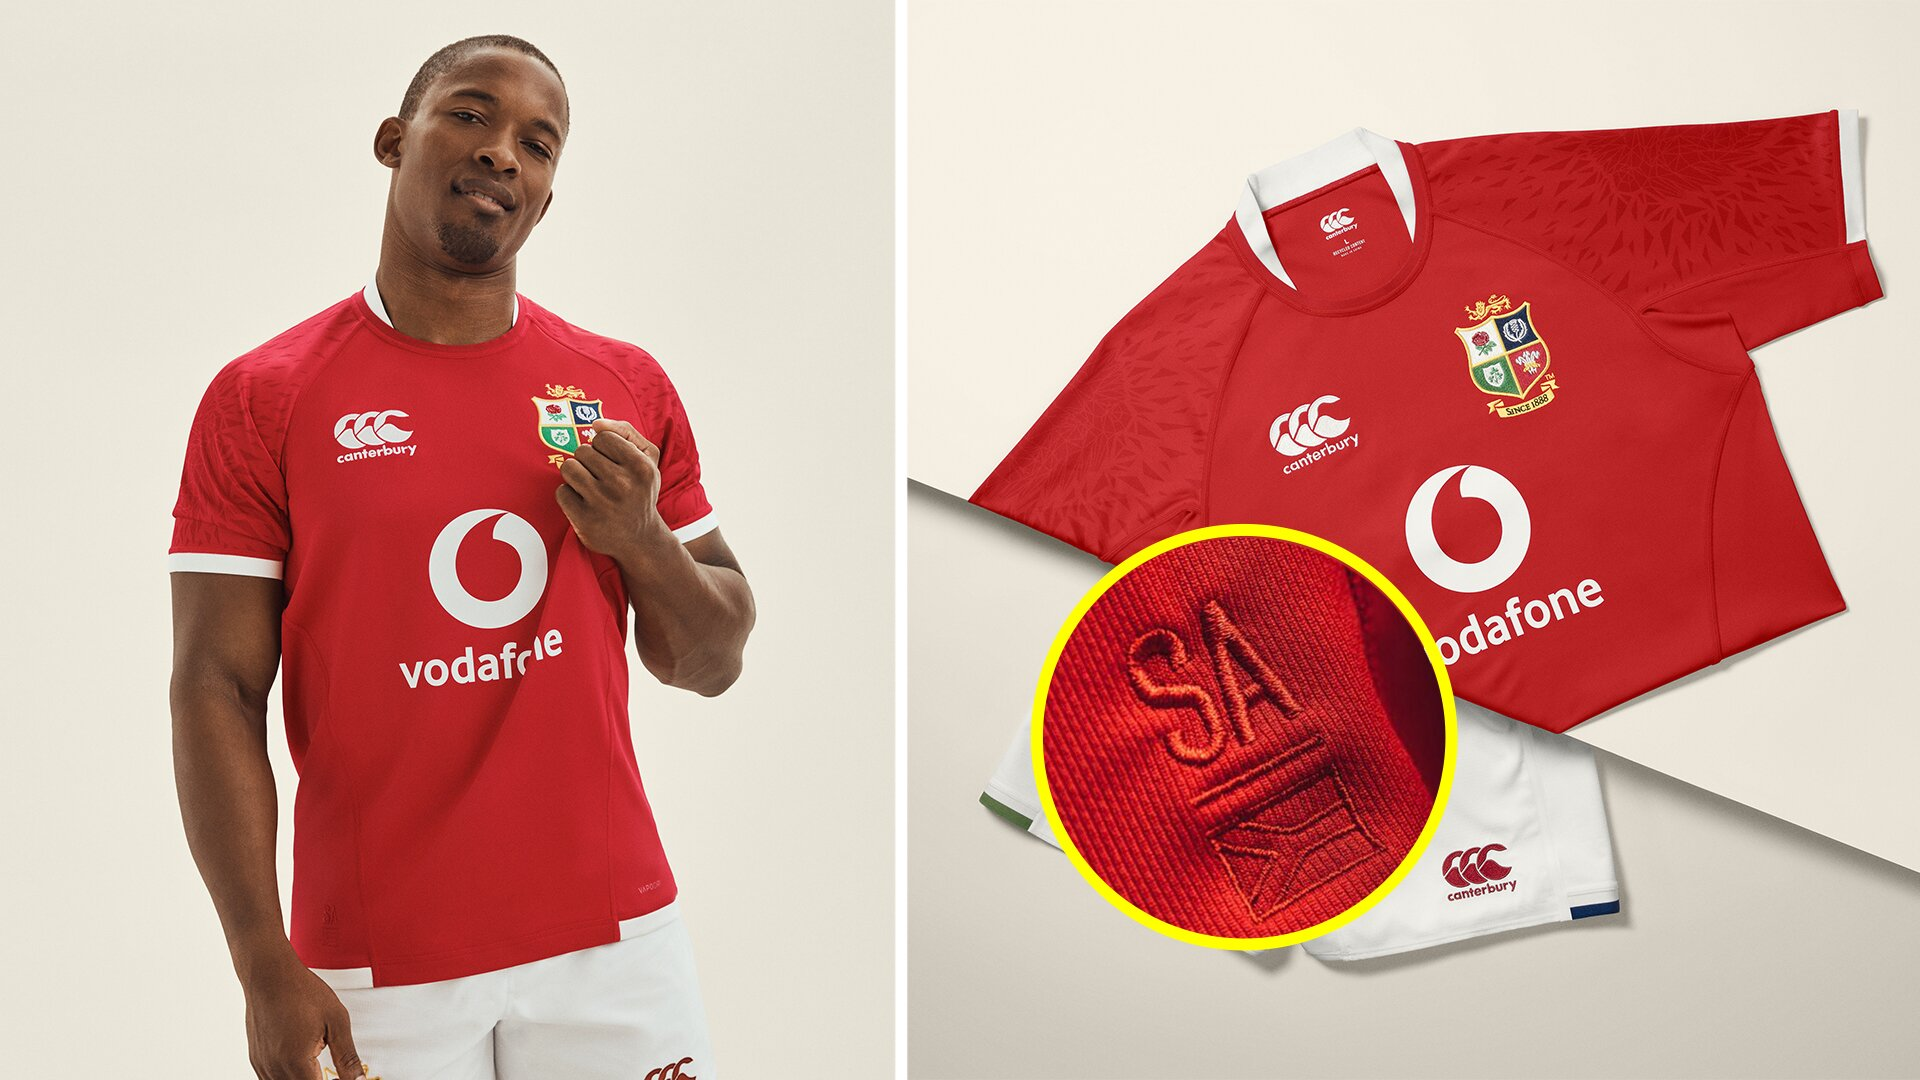 There's something about this years Lions kit that is seriously worrying rugby fans